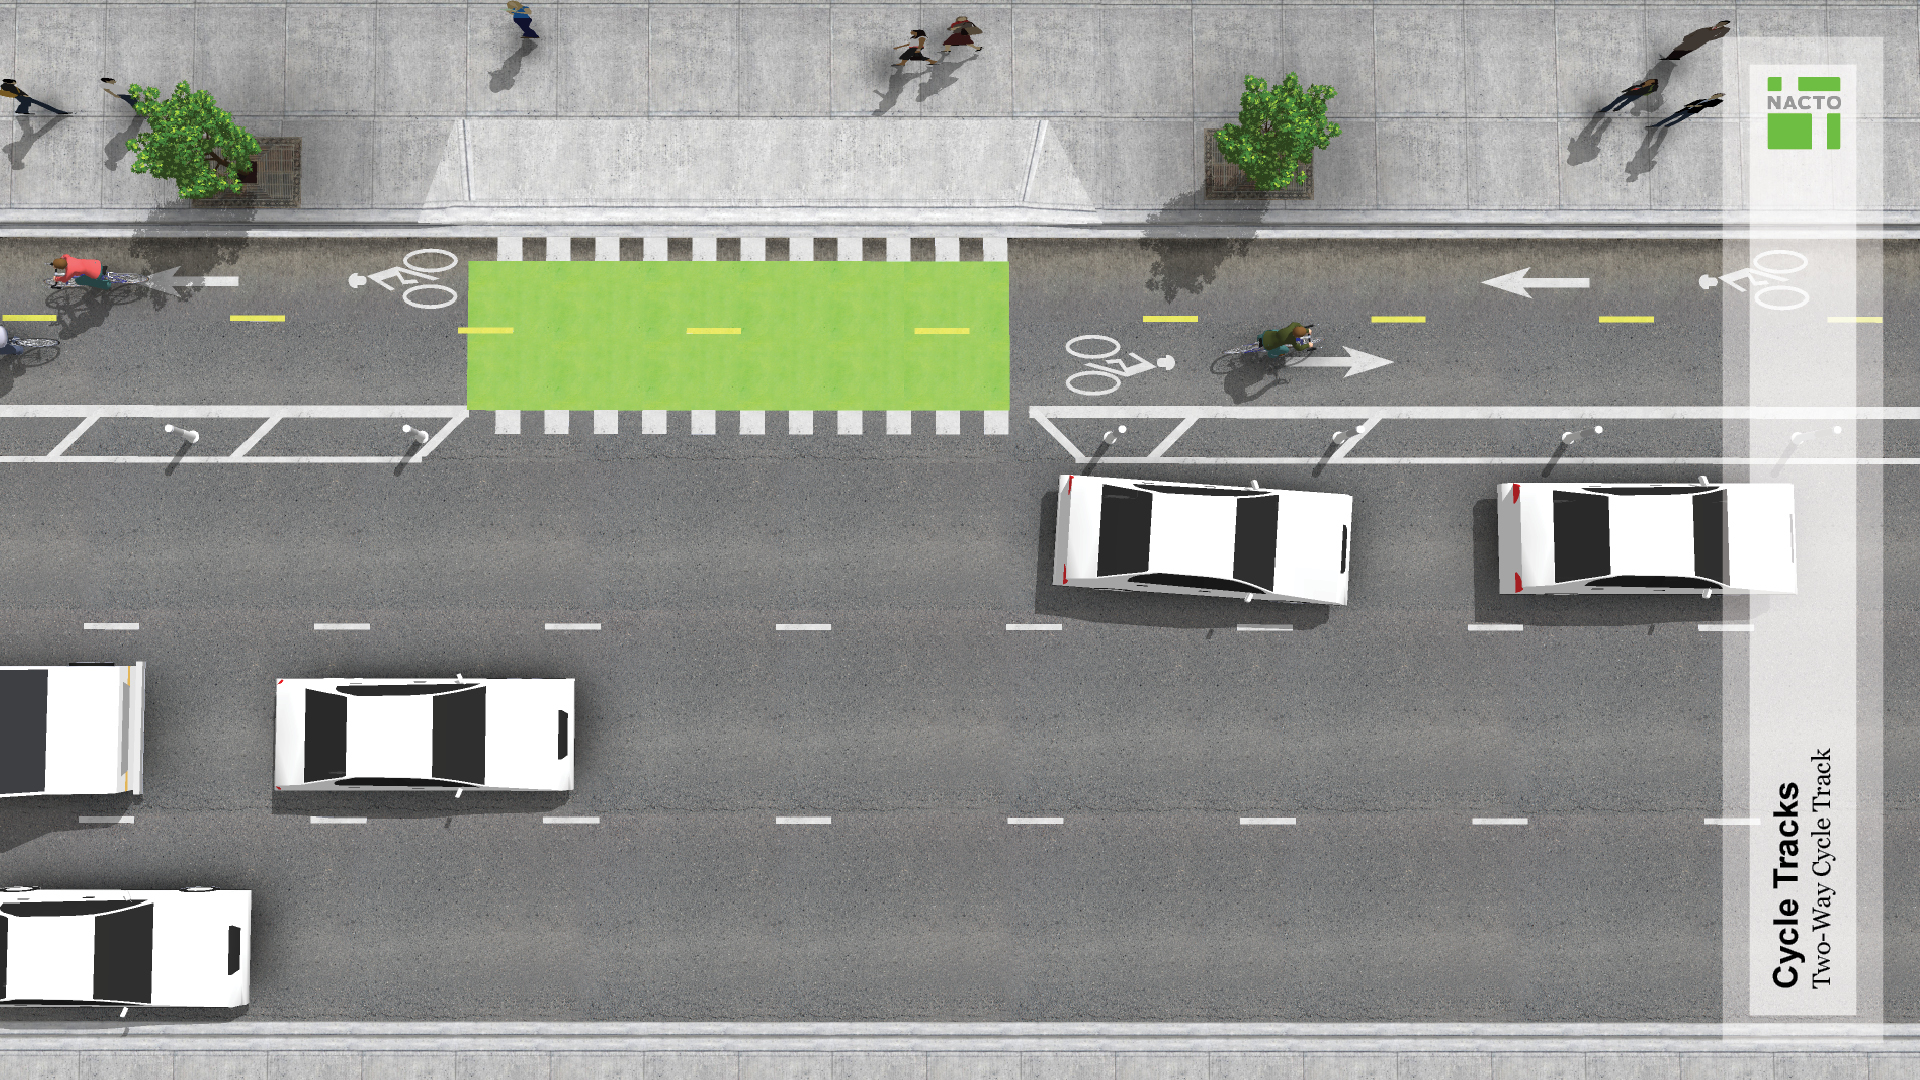 Two Way Cycle Tracks National Association Of City